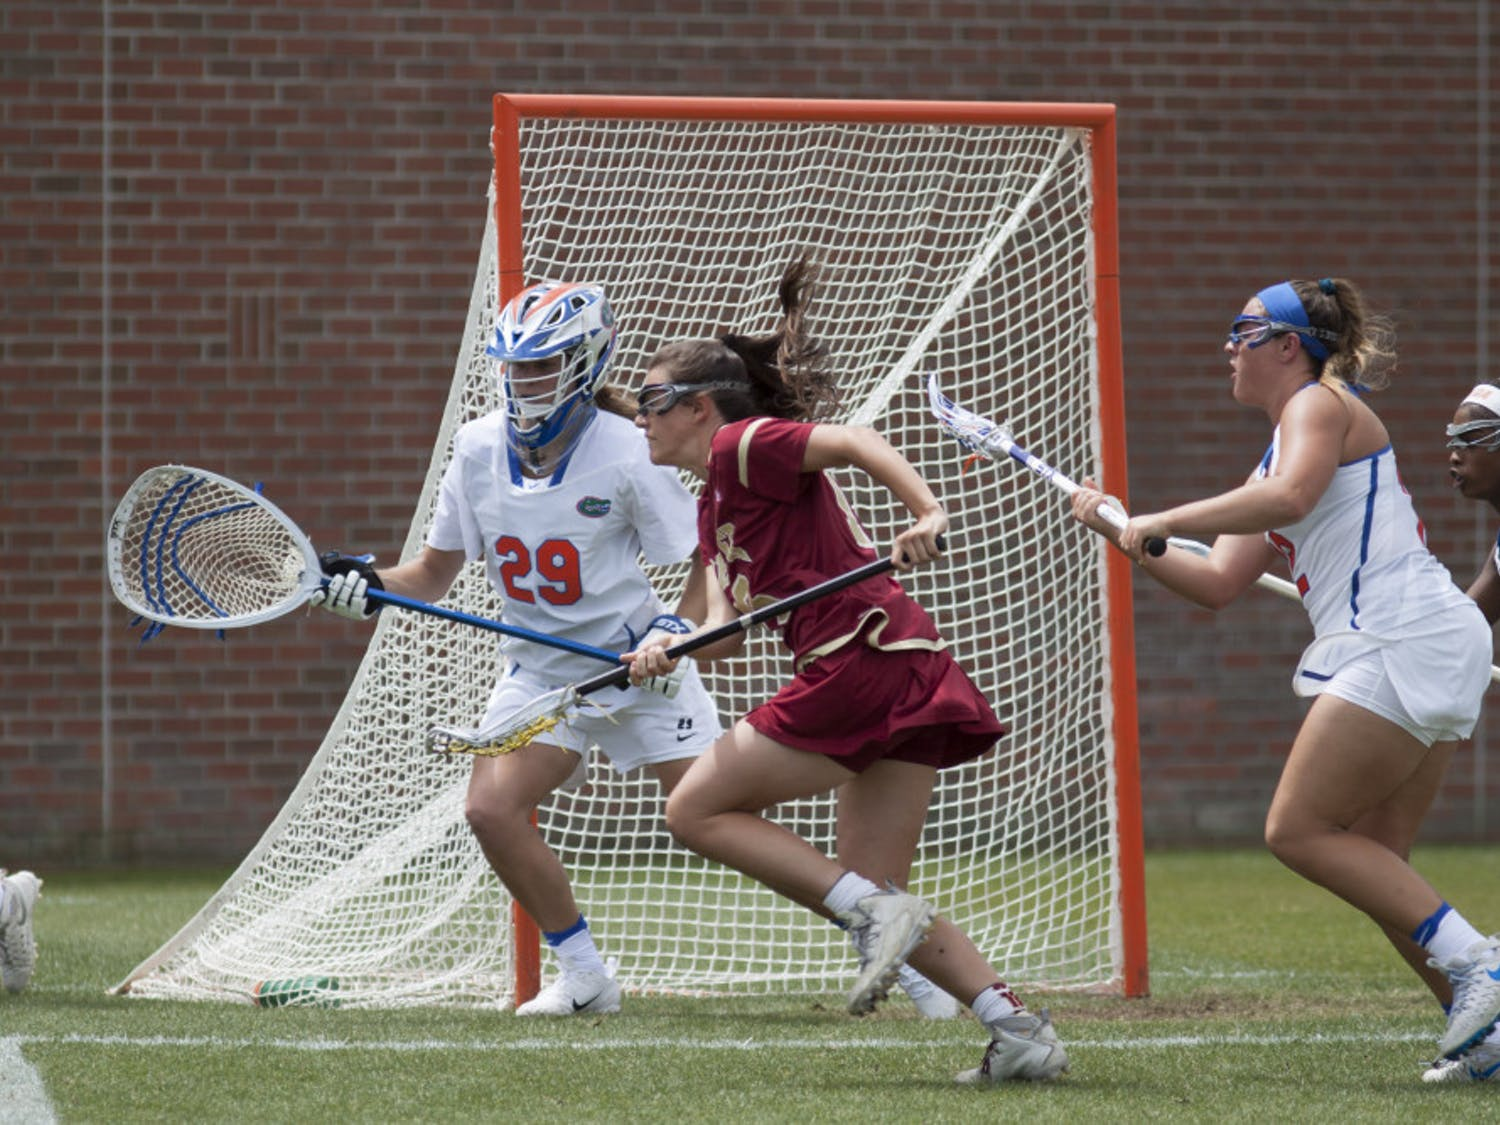 Florida goalkeeper Haley Hicklen (29) recorded a career-high 14 saves in UF's season-opening 16-9 win over Colorado on Sunday.